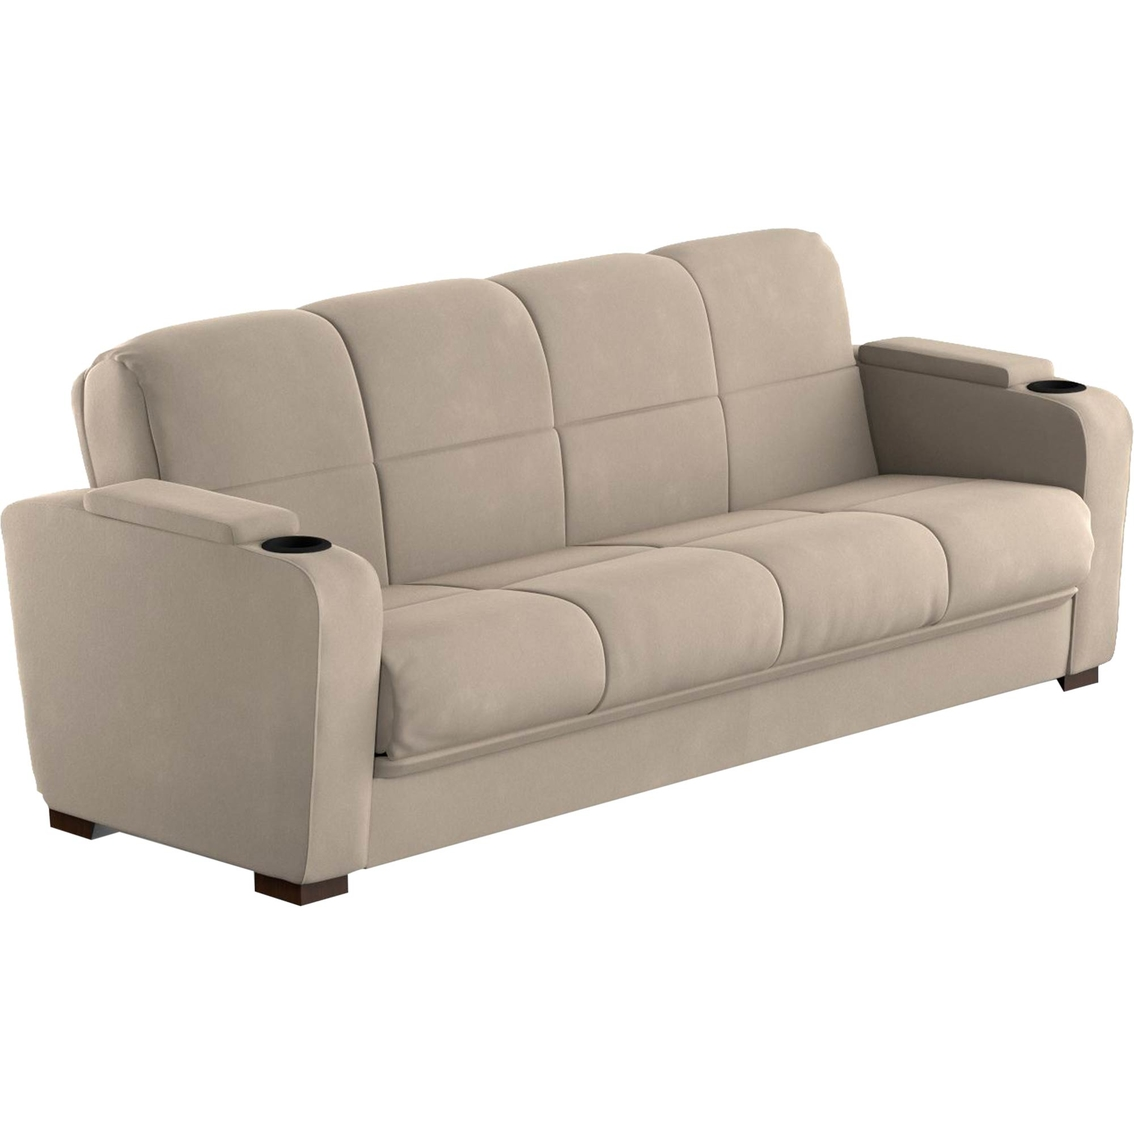 Handy Living Storage Arm Convert A Couch Sofa